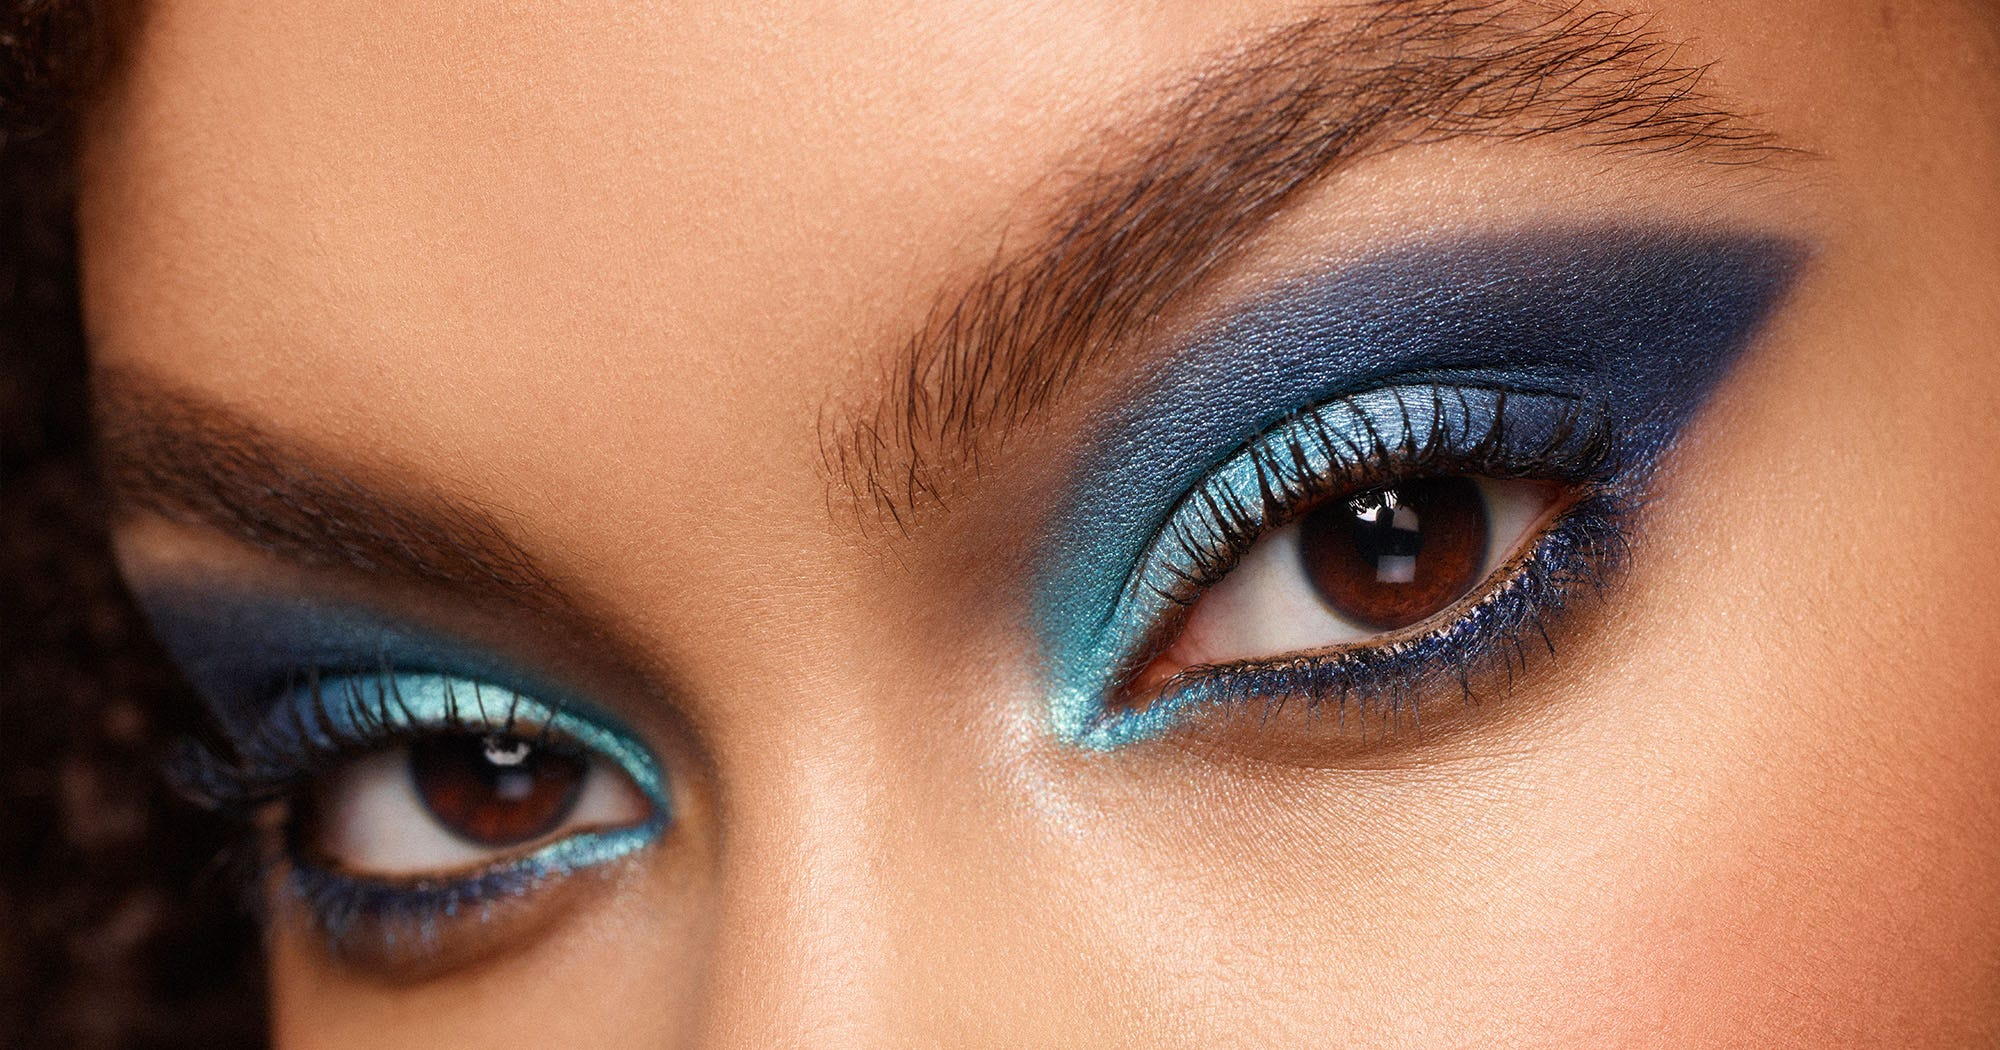 3 Jewel-Toned Beauty Looks You'll Want To Wear Over & Over This Holiday Season